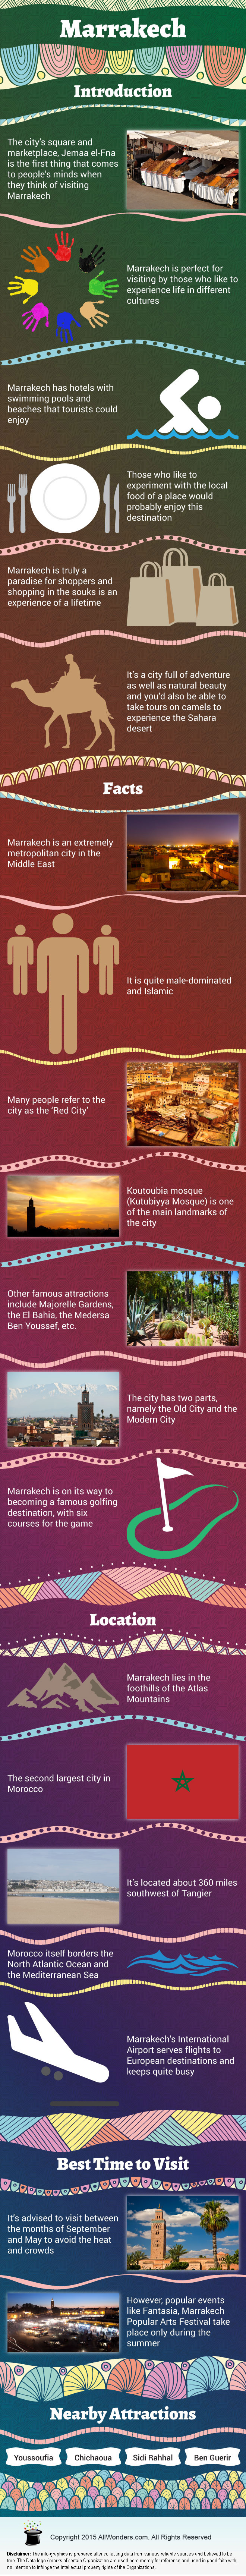 Marrakech - Facts & Infographic